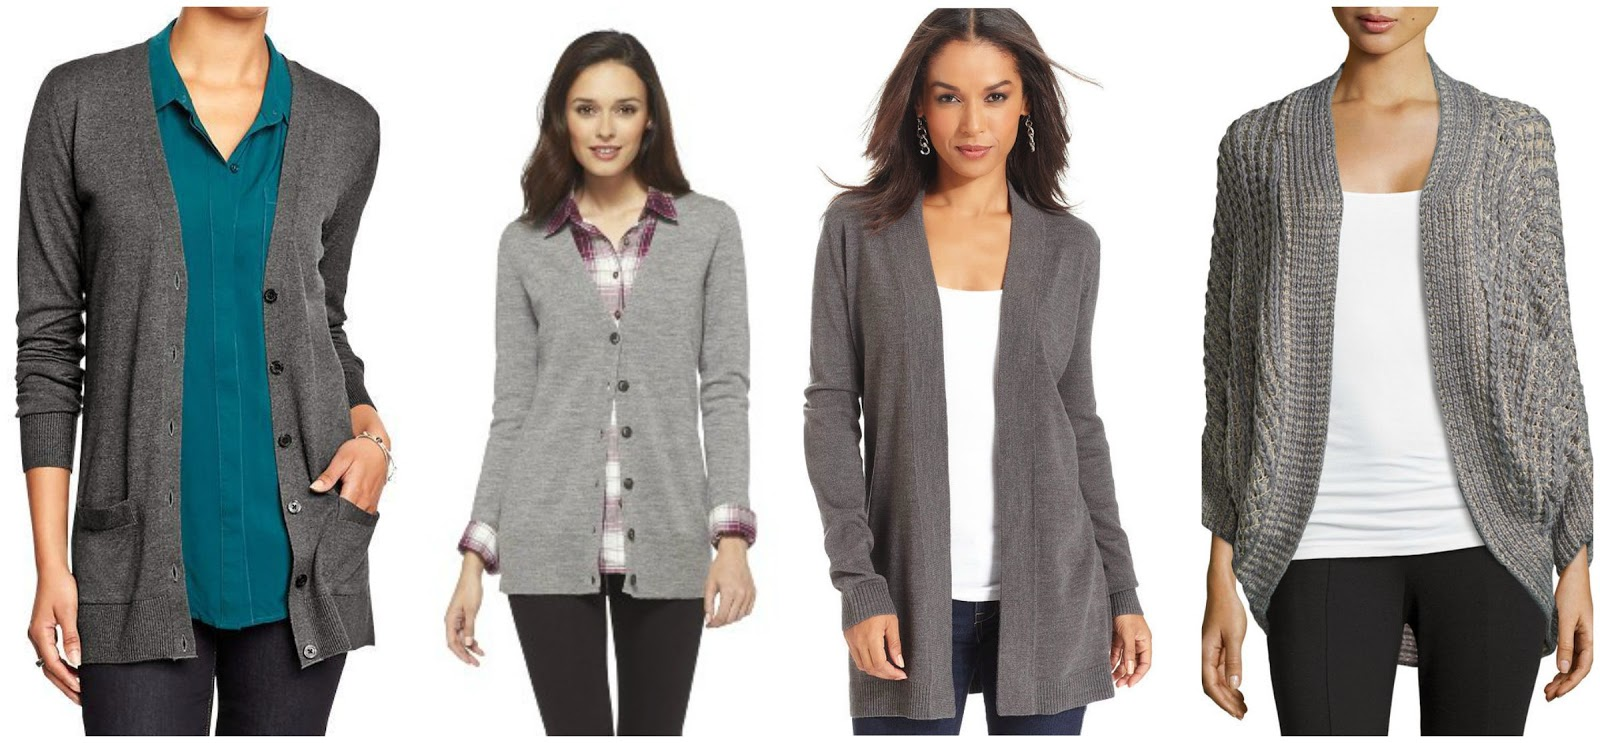 Get these amazing shopping deals on JCPenney plus size clothing. Find you plus size clothing you are looking for.